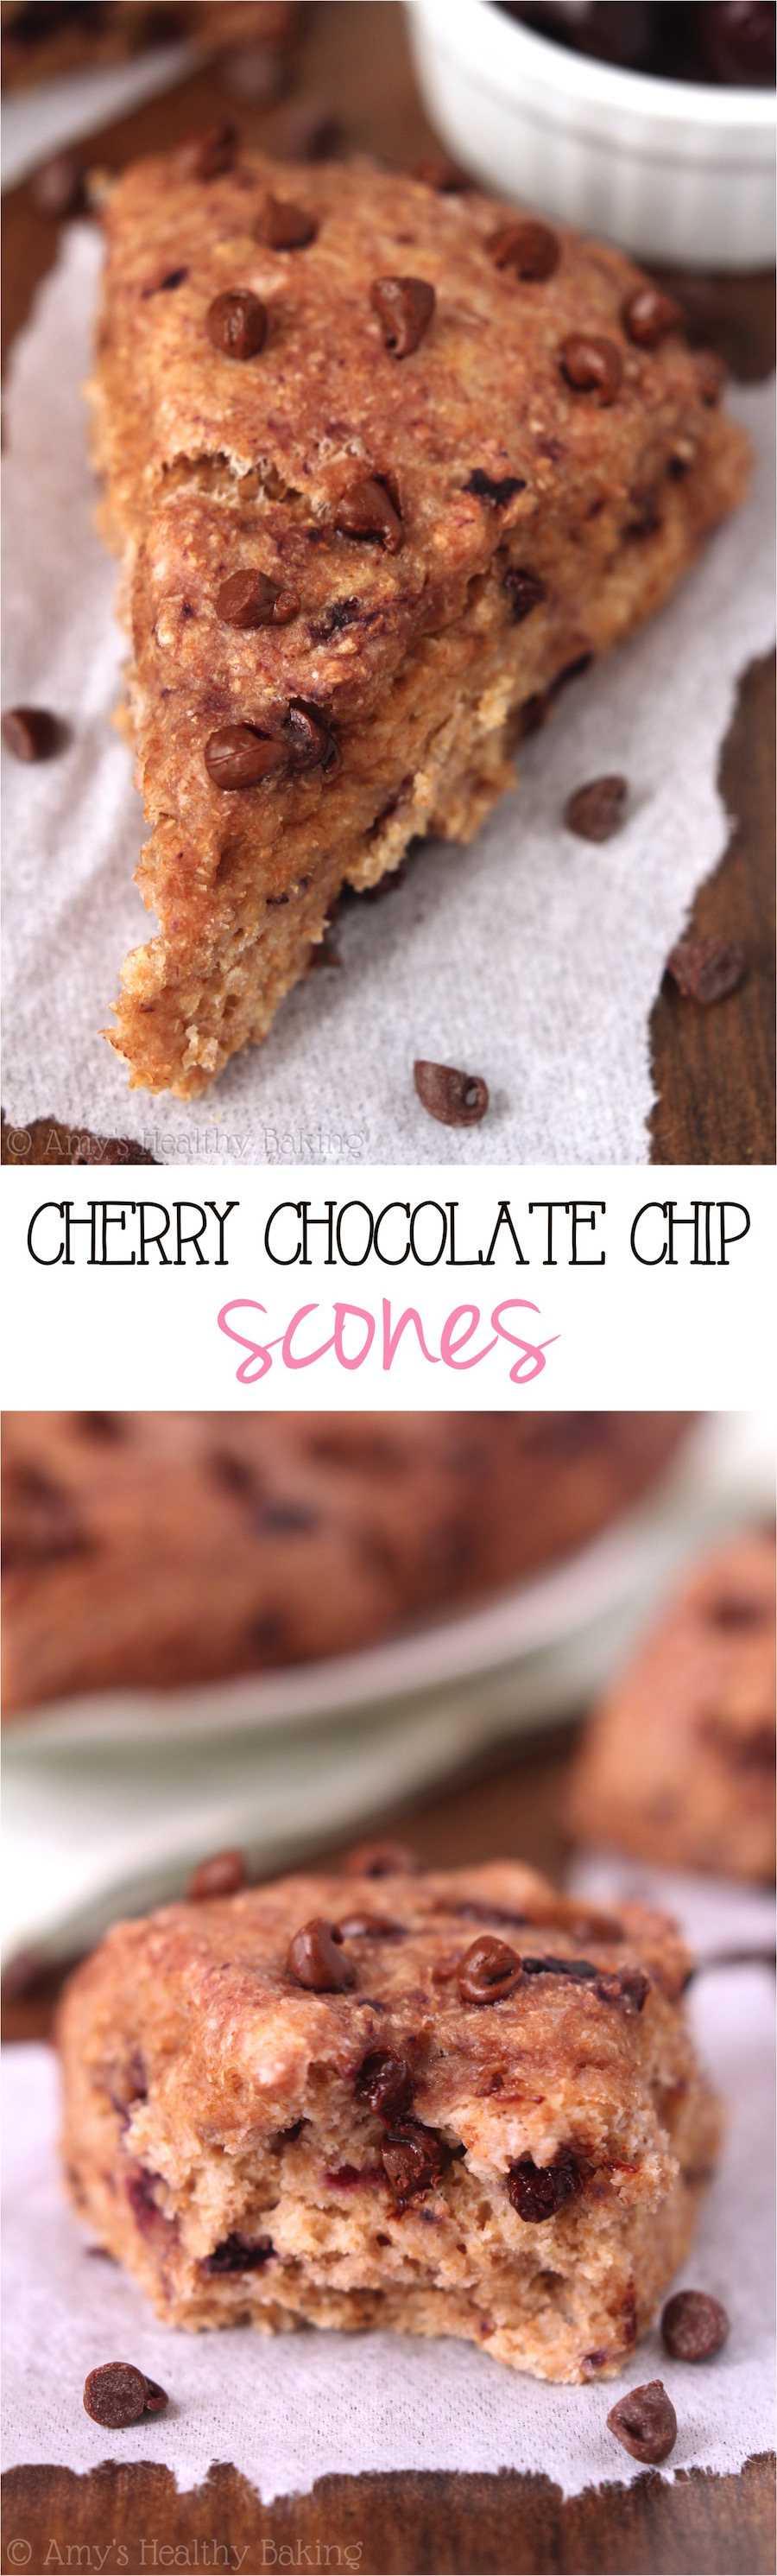 Cherry Chocolate Chip Scones | Amy's Healthy Baking